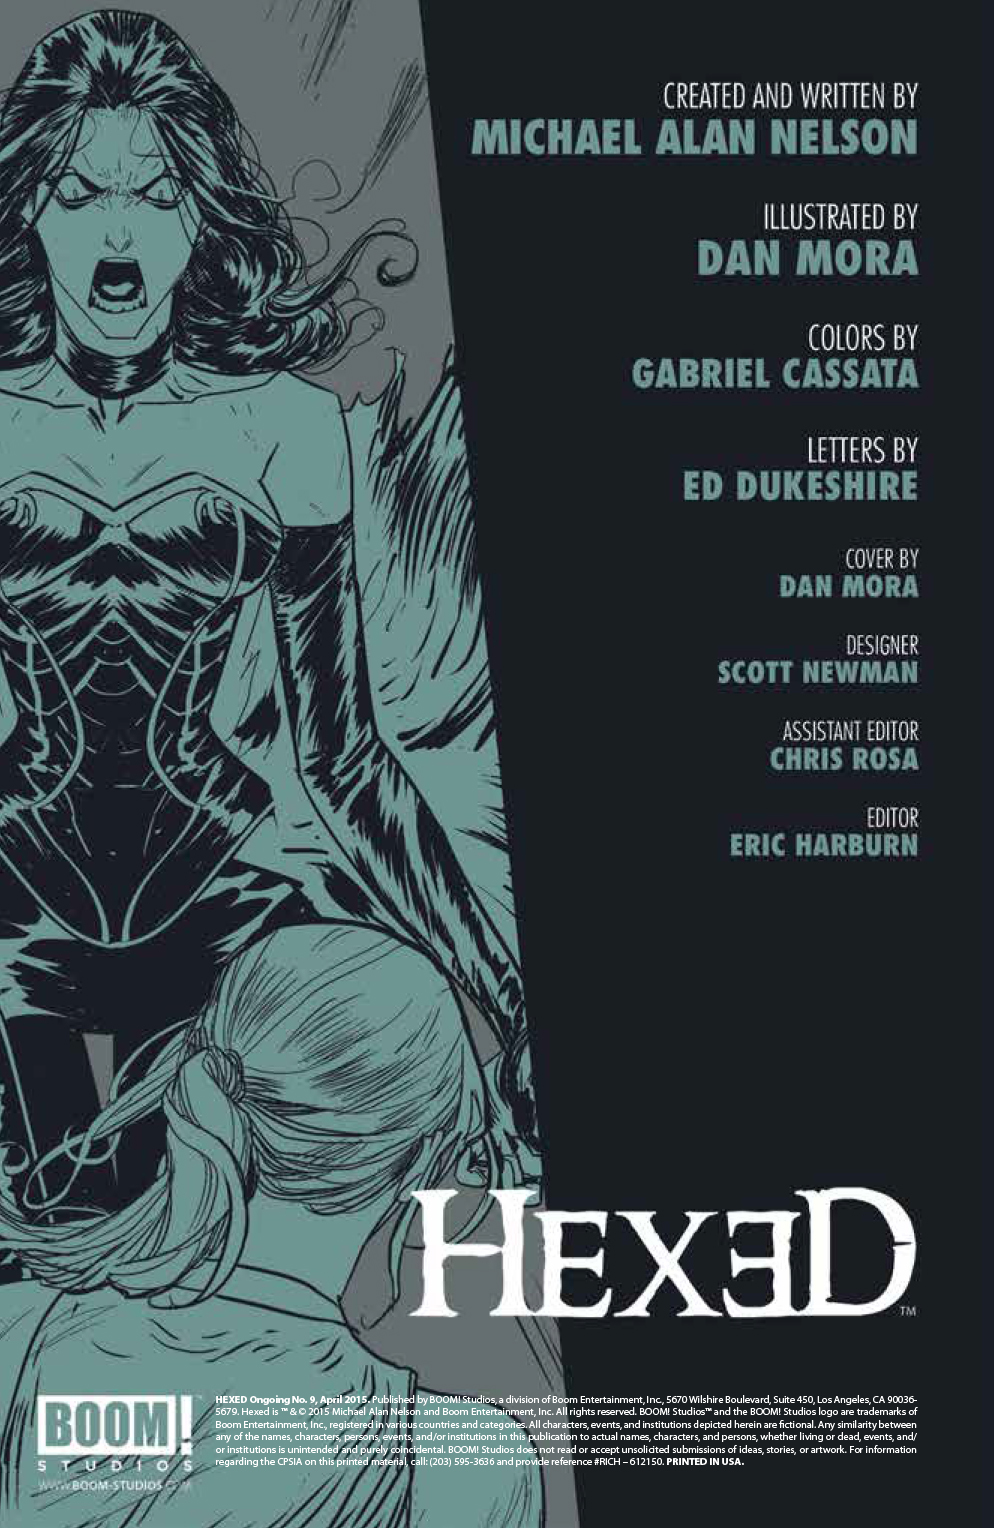 Hexed_009_PRESS-2.jpg